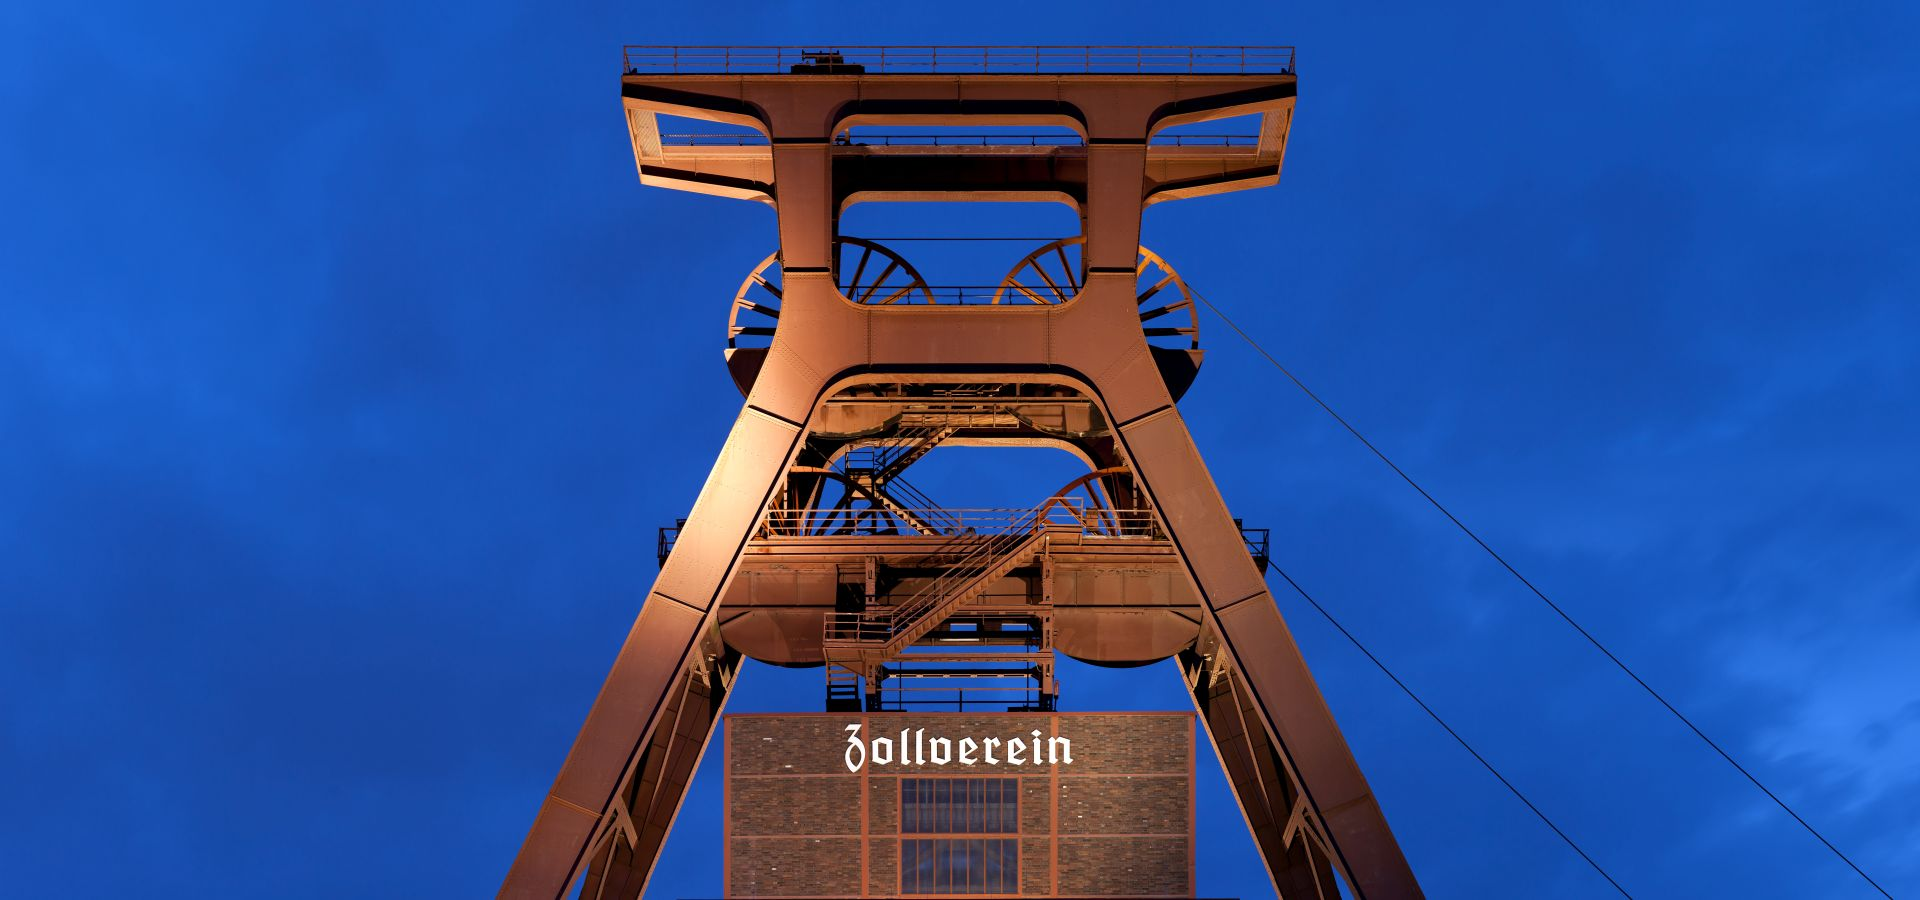 a picture of the former coal mine and museum Zollverein against a dark blue evening sky